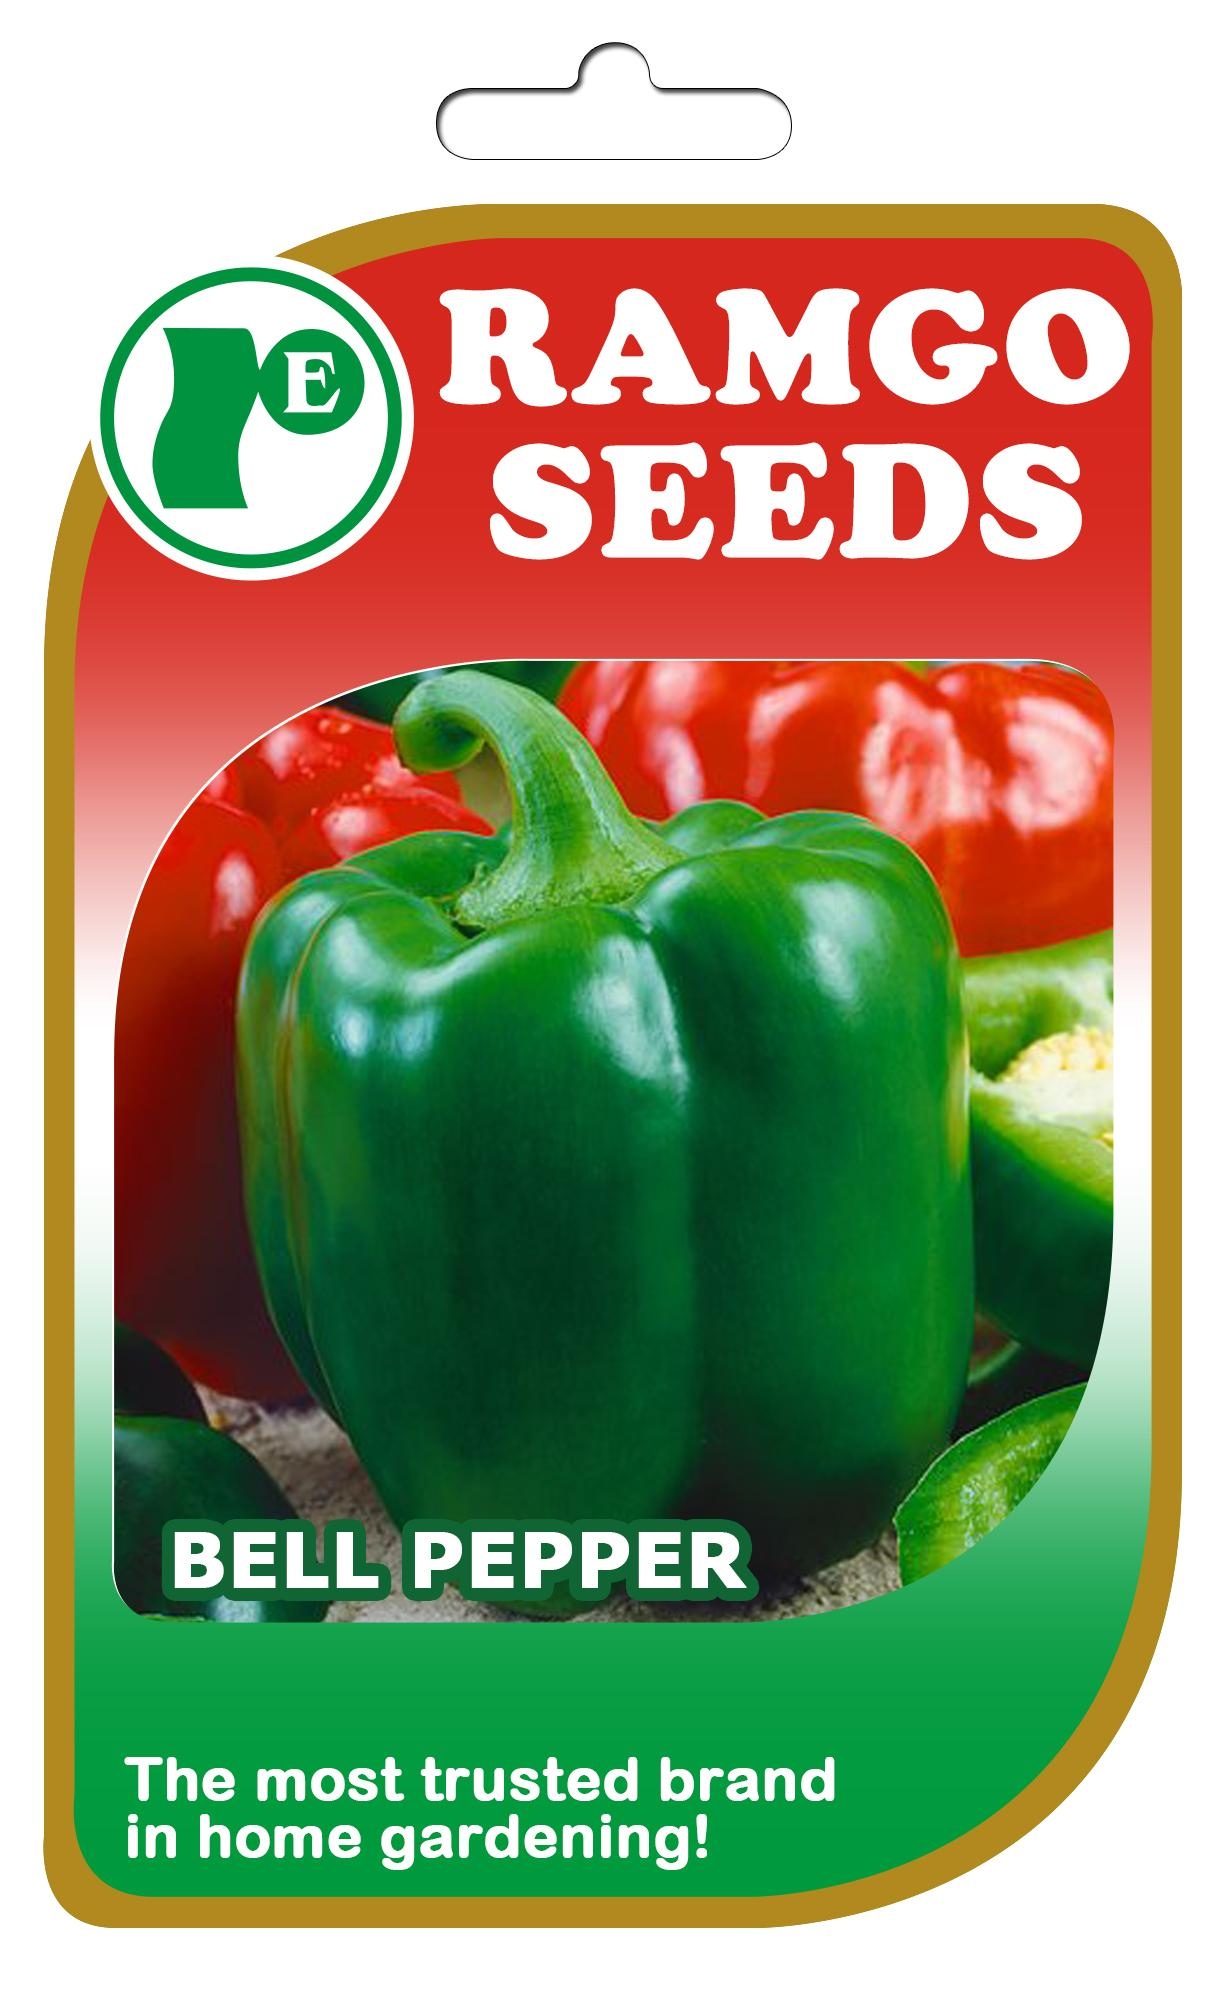 Bell Pepper Seeds By Ramgos Garden And Farm Store.